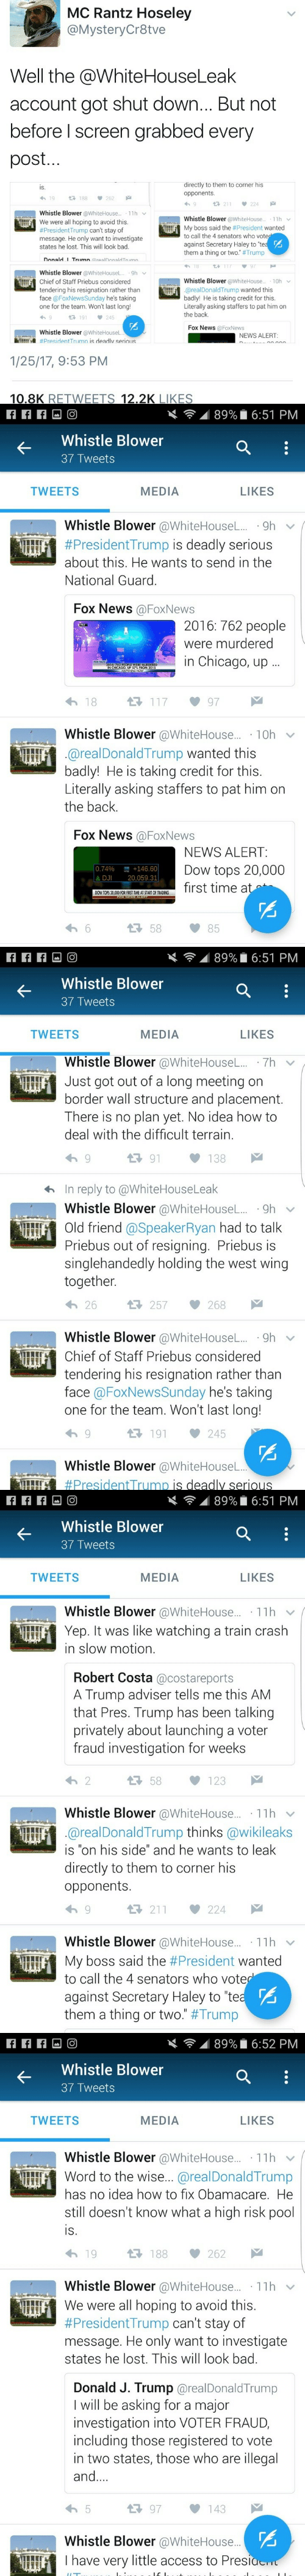 """Bad, Chicago, and News: MC Rantz Hoseley  @MysteryCr8tve  Well the @WhiteHouseLeak  account got shut down... But not  before I screen grabbed every  post...  directly to them to corner his  opponents  is.  19  188  262  224  好211  Whistle Blower @WhiteHouse... 11h  We were all hoping to avoid this  #PresidentTrump can't stay of  message. He only want to investigate  states he lost. This will look bad.  Whistle Blower @WhiteHouse... 11h  My boss said the #President wanted  to call the 4 senators who voter  against Secretary Haley to """"teaE  them a thing or two. #Trump  I  Donald TrumnrealDonaldTrumn  97  18  Whistle Blower @WhiteHouseL.. 9h  Chief of Staff Priebus considered  tendering his resignation rather than  face @FoxNewsSunday he's taking  one for the team. Won't last long!  Whistle Blower @WhiteHouse..  10h  @realDonaldTrump wanted this  L  badly! He is taking credit for this  Literally asking staffers to pat him on  the back  1 191  245  9  Fox News @Fox News  Whistle Blower @WhiteHouseL.  NEWS ALERT:  #President Trumn is deadlv serious  1/25/17, 9:53 PM  10.8K RETVWEETS 12.2K LIKES   89% 6:51 PM  Whistle Blower  37 Tweets  MEDIA  TWEETS  LIKES  Whistle Blower @WhiteHouseL.. 9h  #PresidentTrump is deadly serious  about this. He wants to send in the  National Guard.  Fox News @FoxNews  2016: 762 people  were murdered  in Chicago, up  NCHCACOPLE WERE MURDERED  UP 57% FROM 2015  117  18  97  Whistle Blower @WhiteHouse.. 10h  @realDonaldTrump wanted this  badly! He is taking credit for this.  Literally asking staffers to pat him on  the back.  Fox News @FoxNews  NEWS ALERT:  0.74%  A DJI  +146.60  20,059.31  Dow tops 20,000  first time at  DOW TOPS 20,000 FOR FIRST TIME AT START OF TRADING  58  6  85   89% 6:51 PM  Whistle Blower  37 Tweets  MEDIA  TWEETS  LIKES  Whistle Blower @WhiteHouseL. 7h  Just got out of a long meeting on  border wall structure and placement.  There is no plan yet. No idea how to  deal with the difficult terrain.  91  138  In reply to @Whi"""